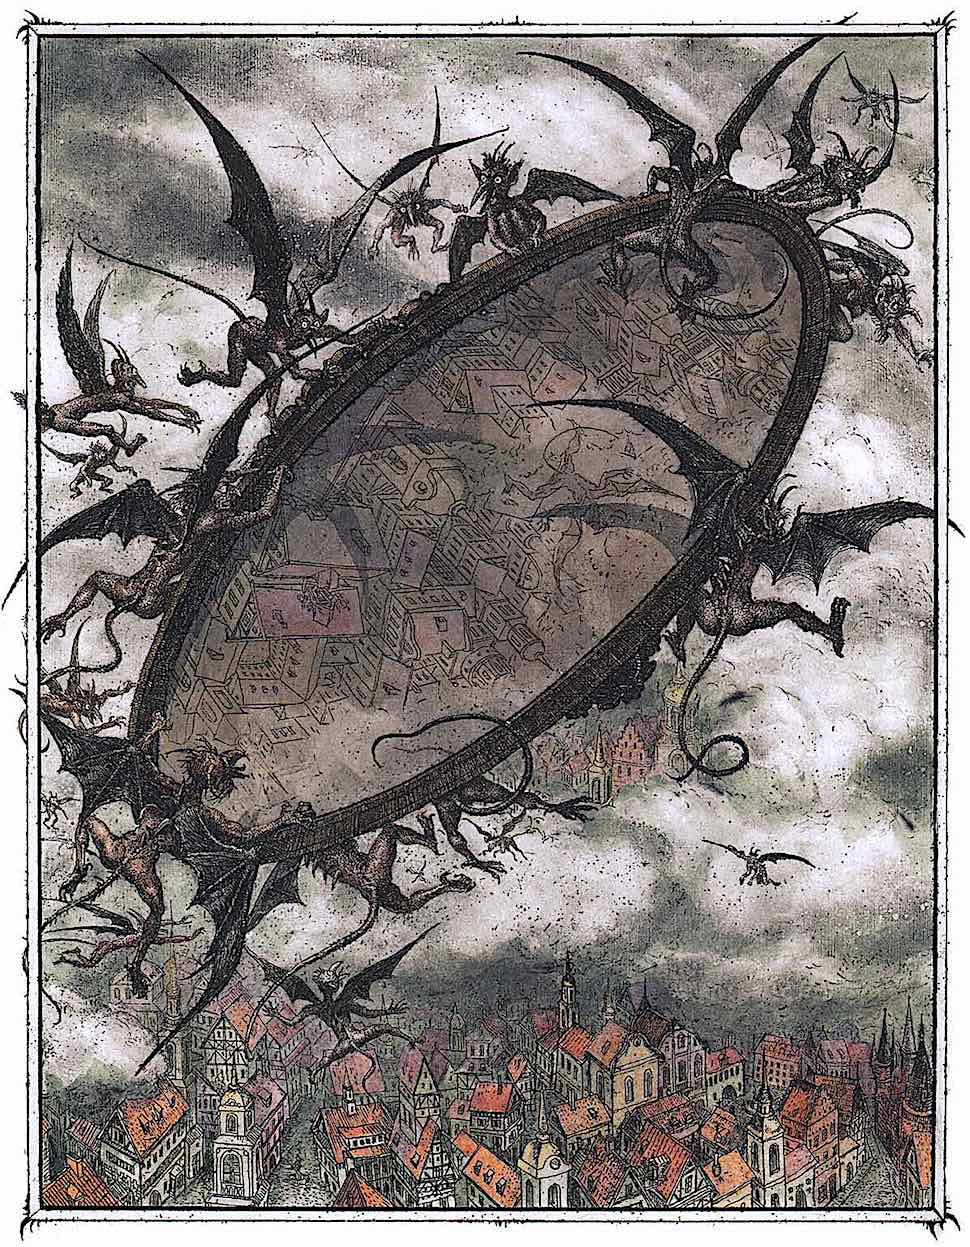 a children's book illustration by Boris Diodorov, flying demons holding a giant mirror over a town